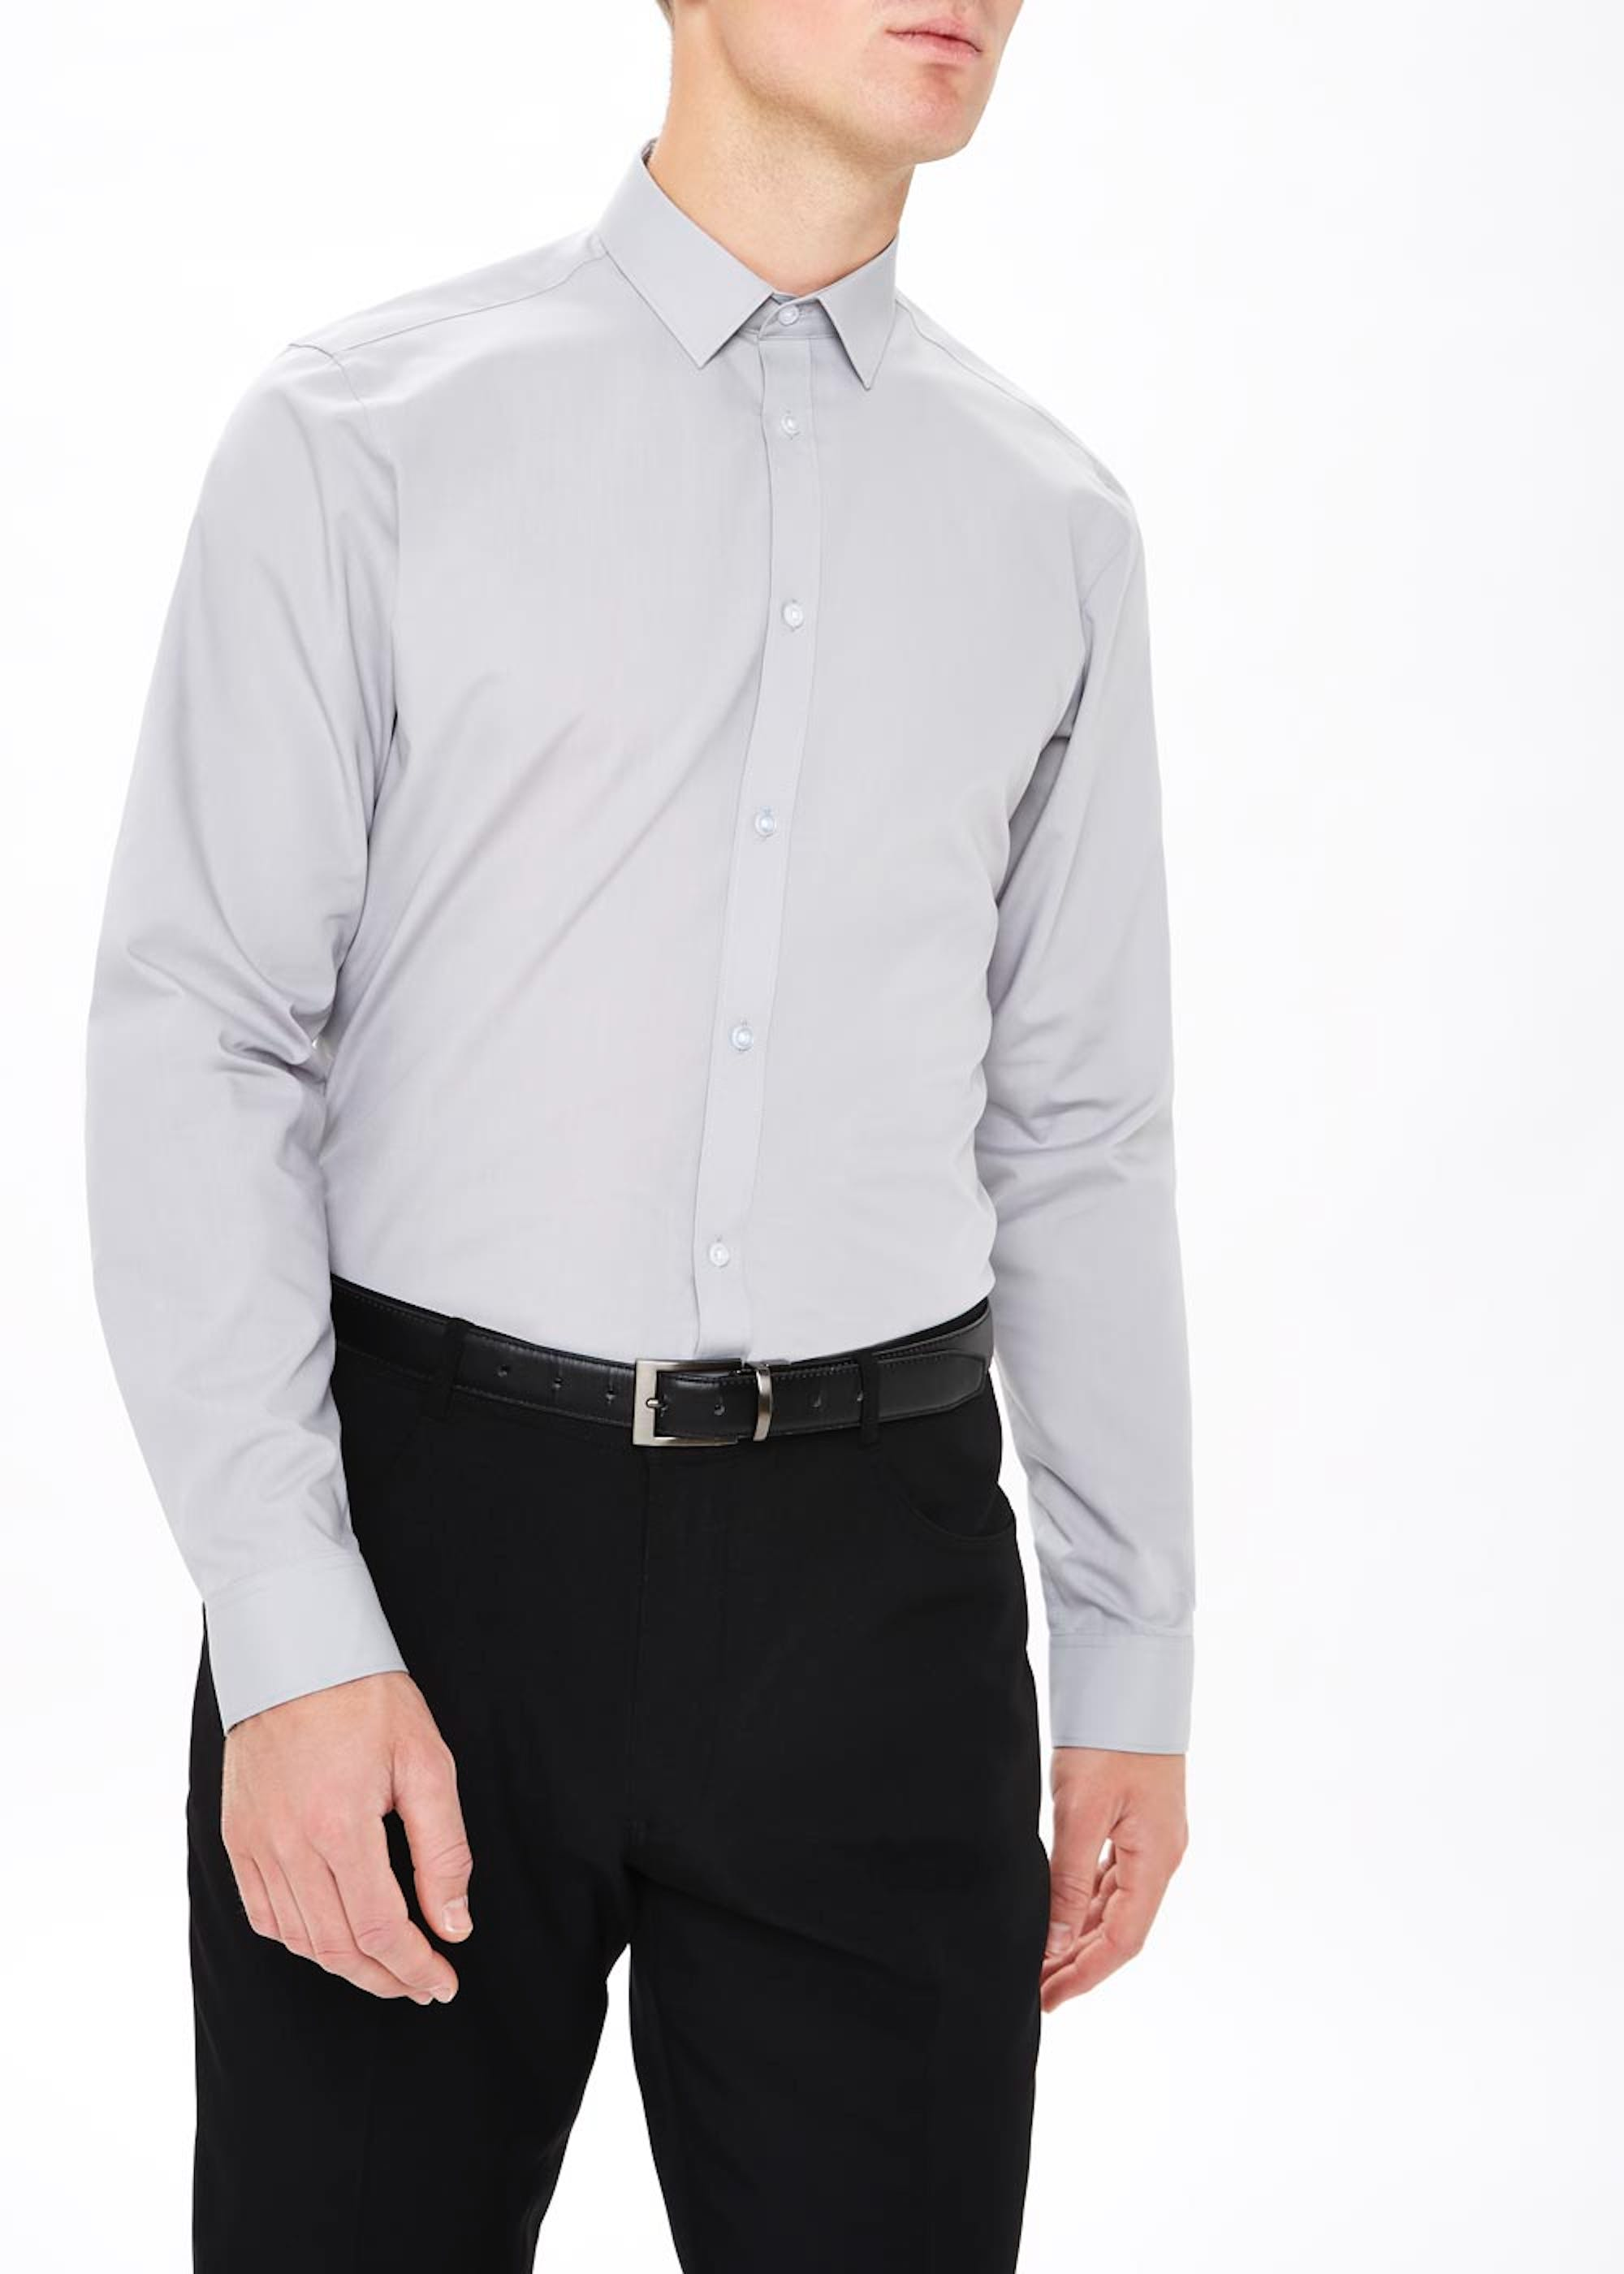 Taylor & Wright Easy Care Slim Fit Long Sleeve Shirt Grey 1MsgPa